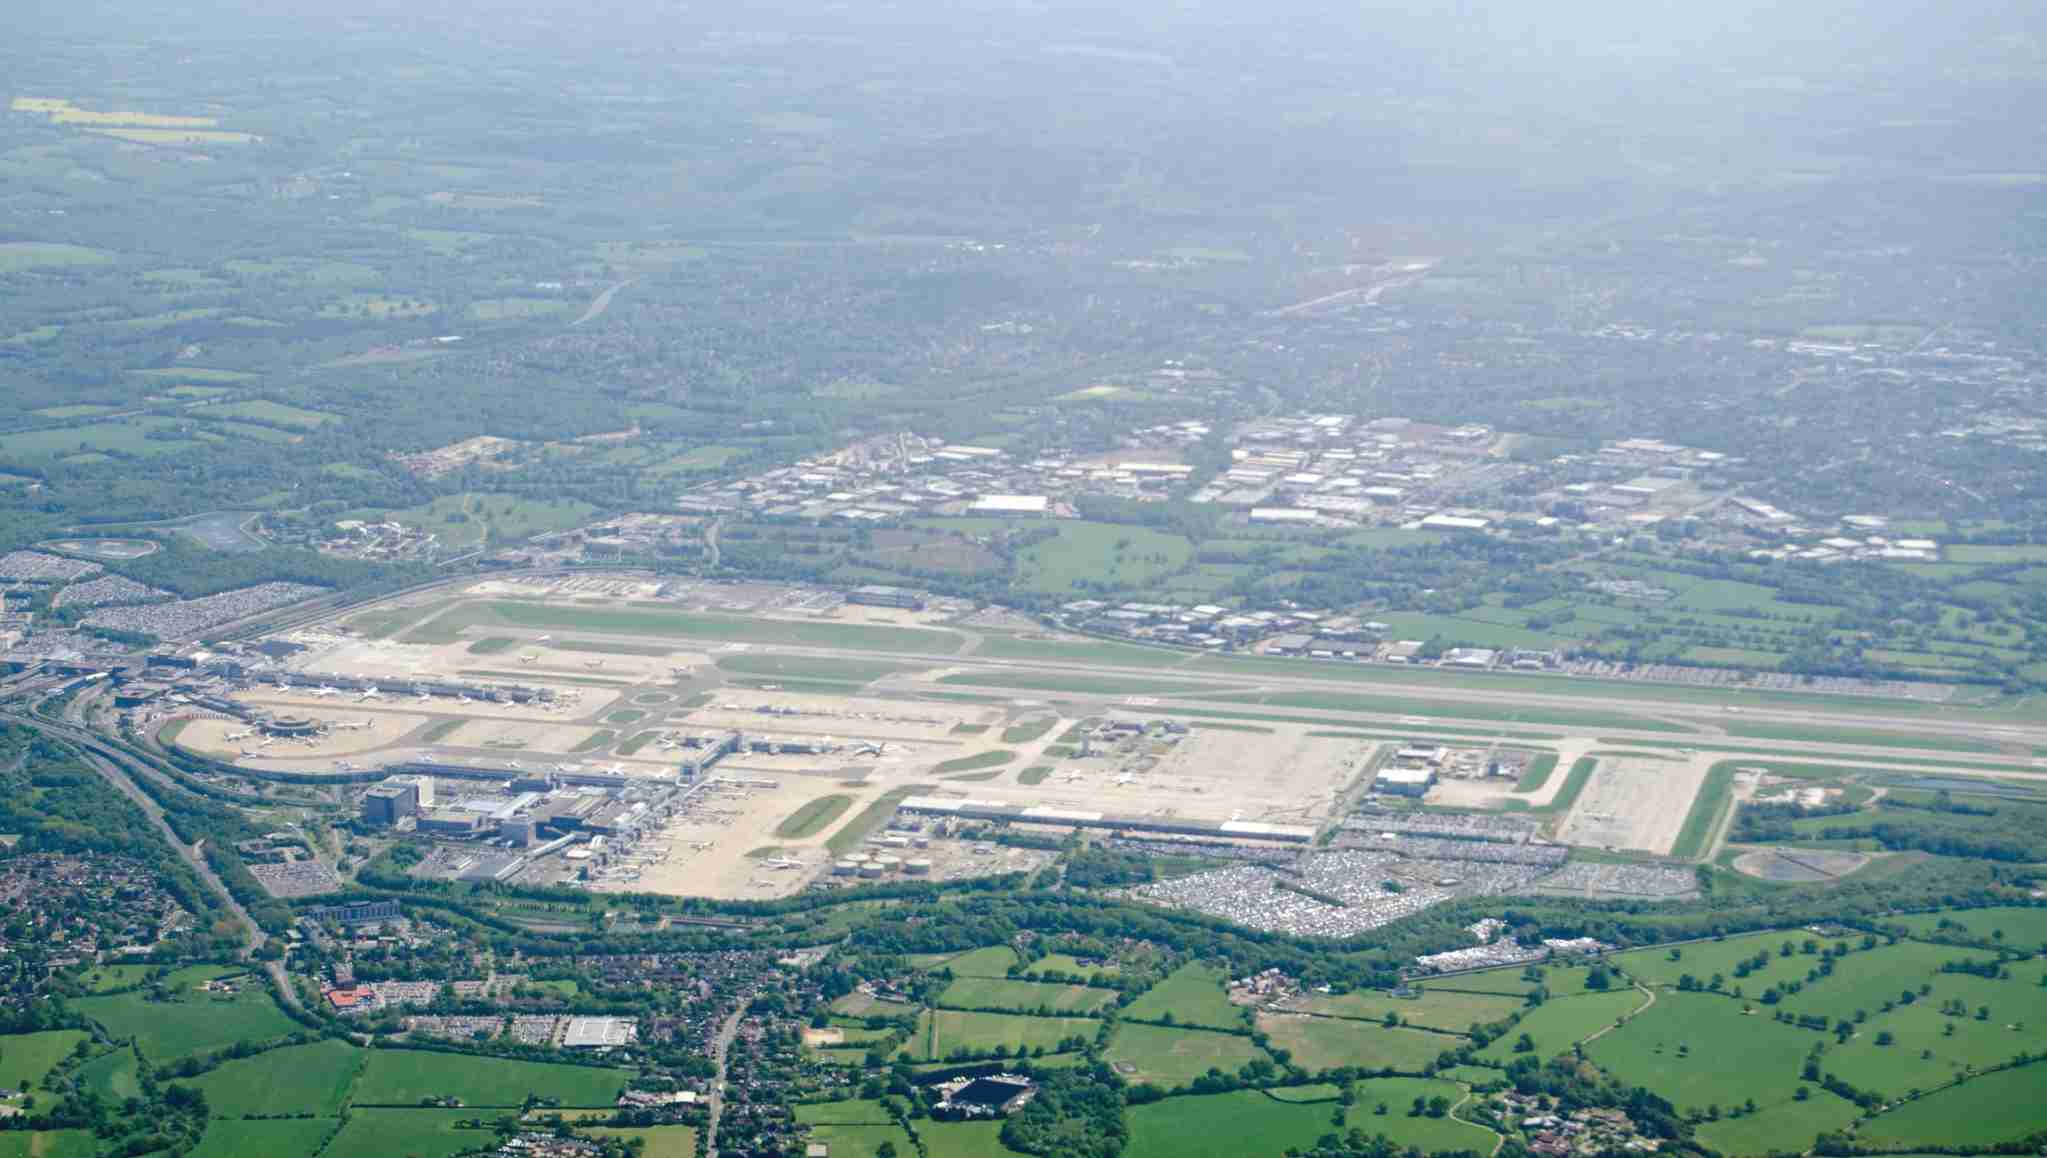 View from above of the runway and terminals at London